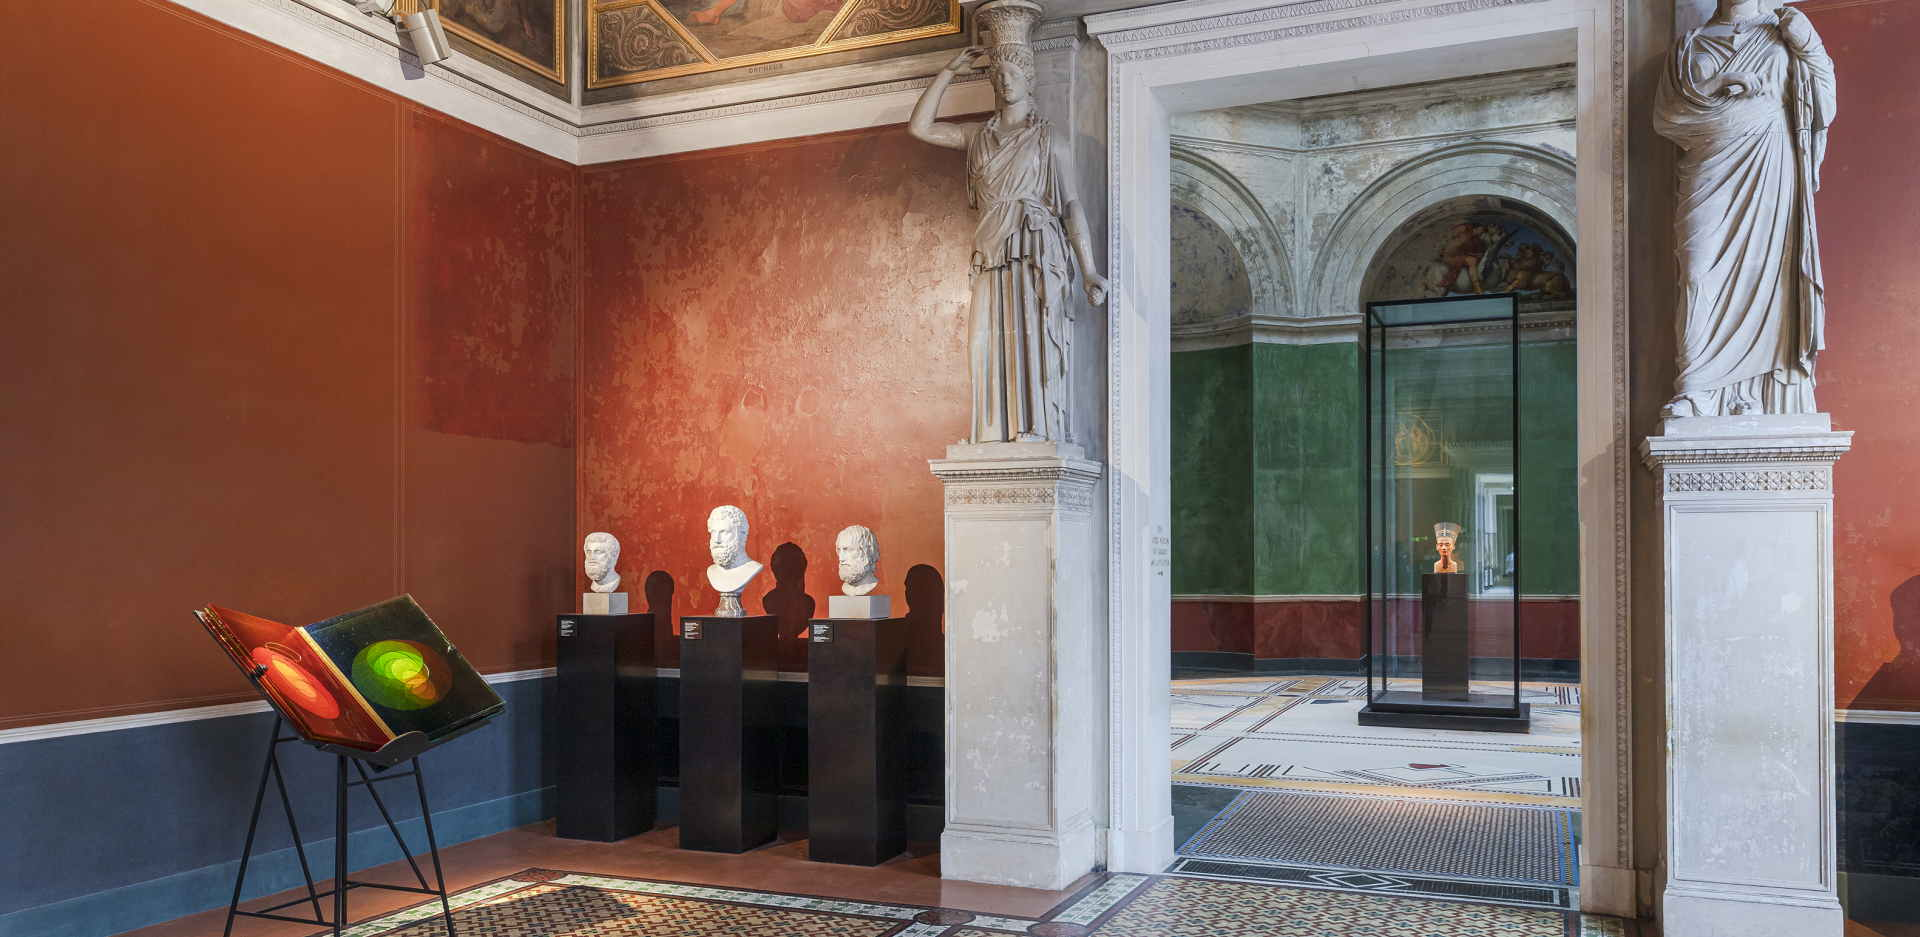 Ólafur Elíasson, A View Becomes A Window, Installation view Neues Museum, Berlin 2021